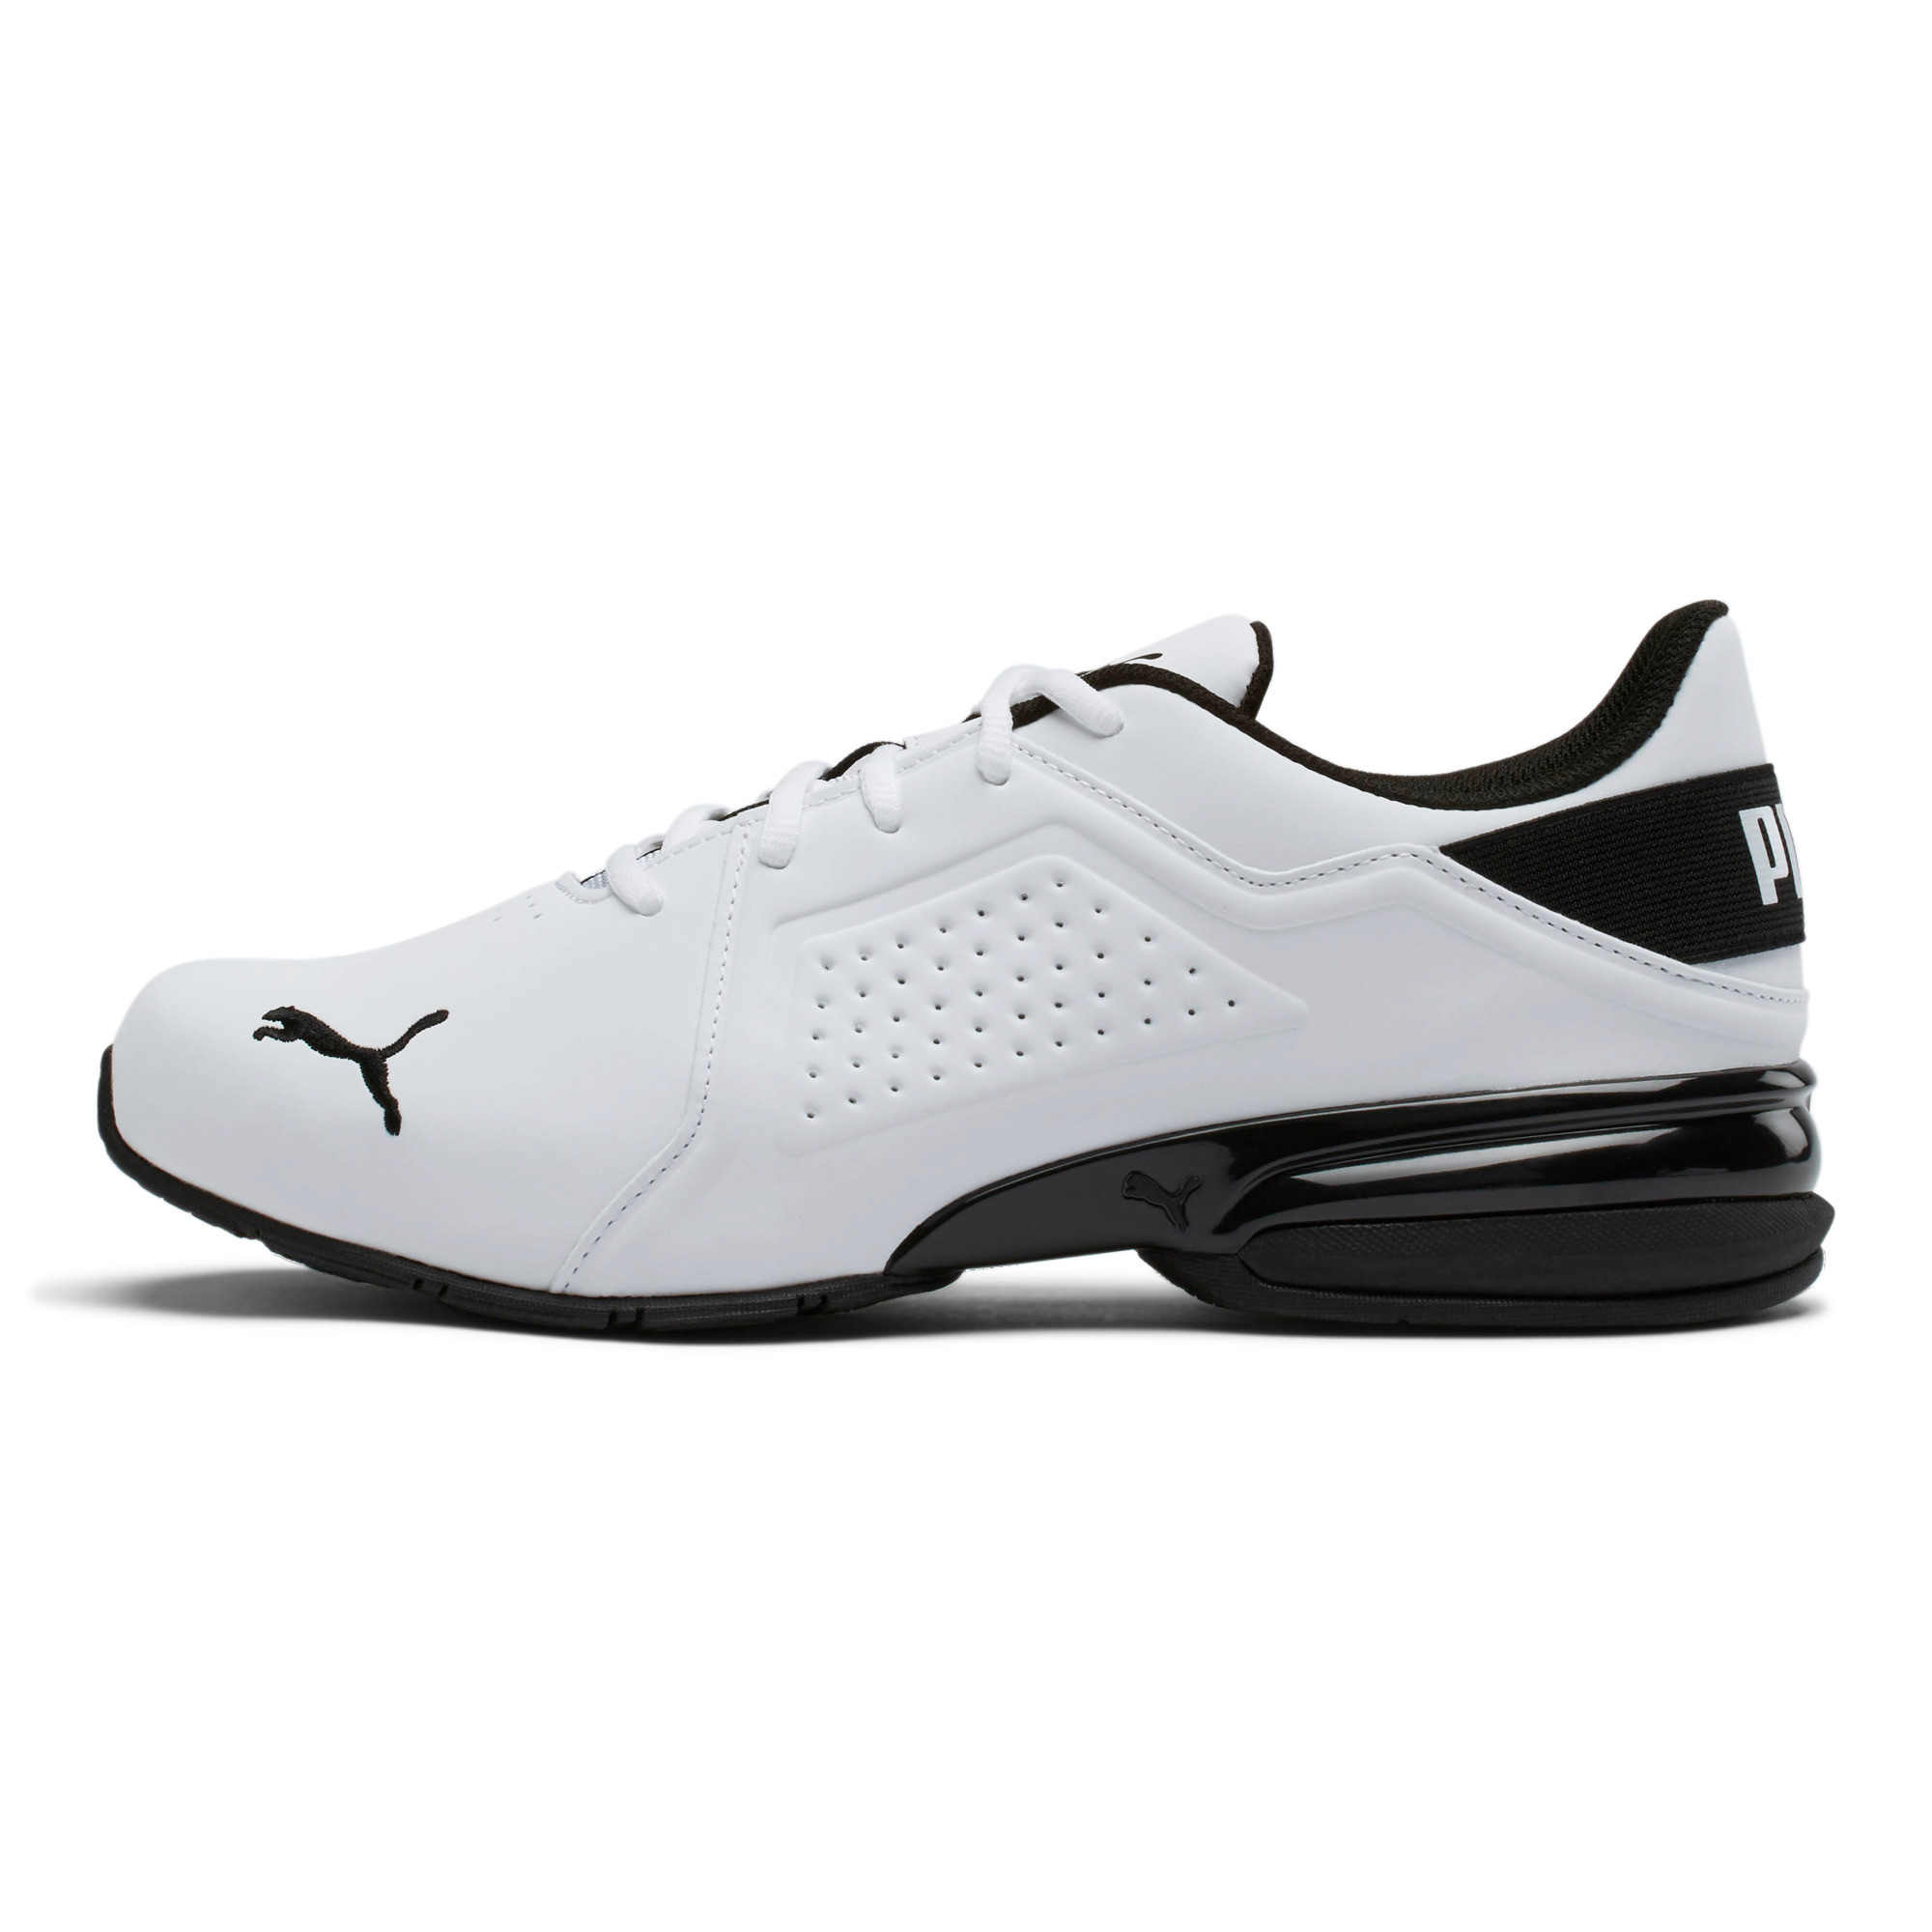 PUMA-Viz-Runner-Men-s-Running-Shoes-Men-Shoe-Running thumbnail 9